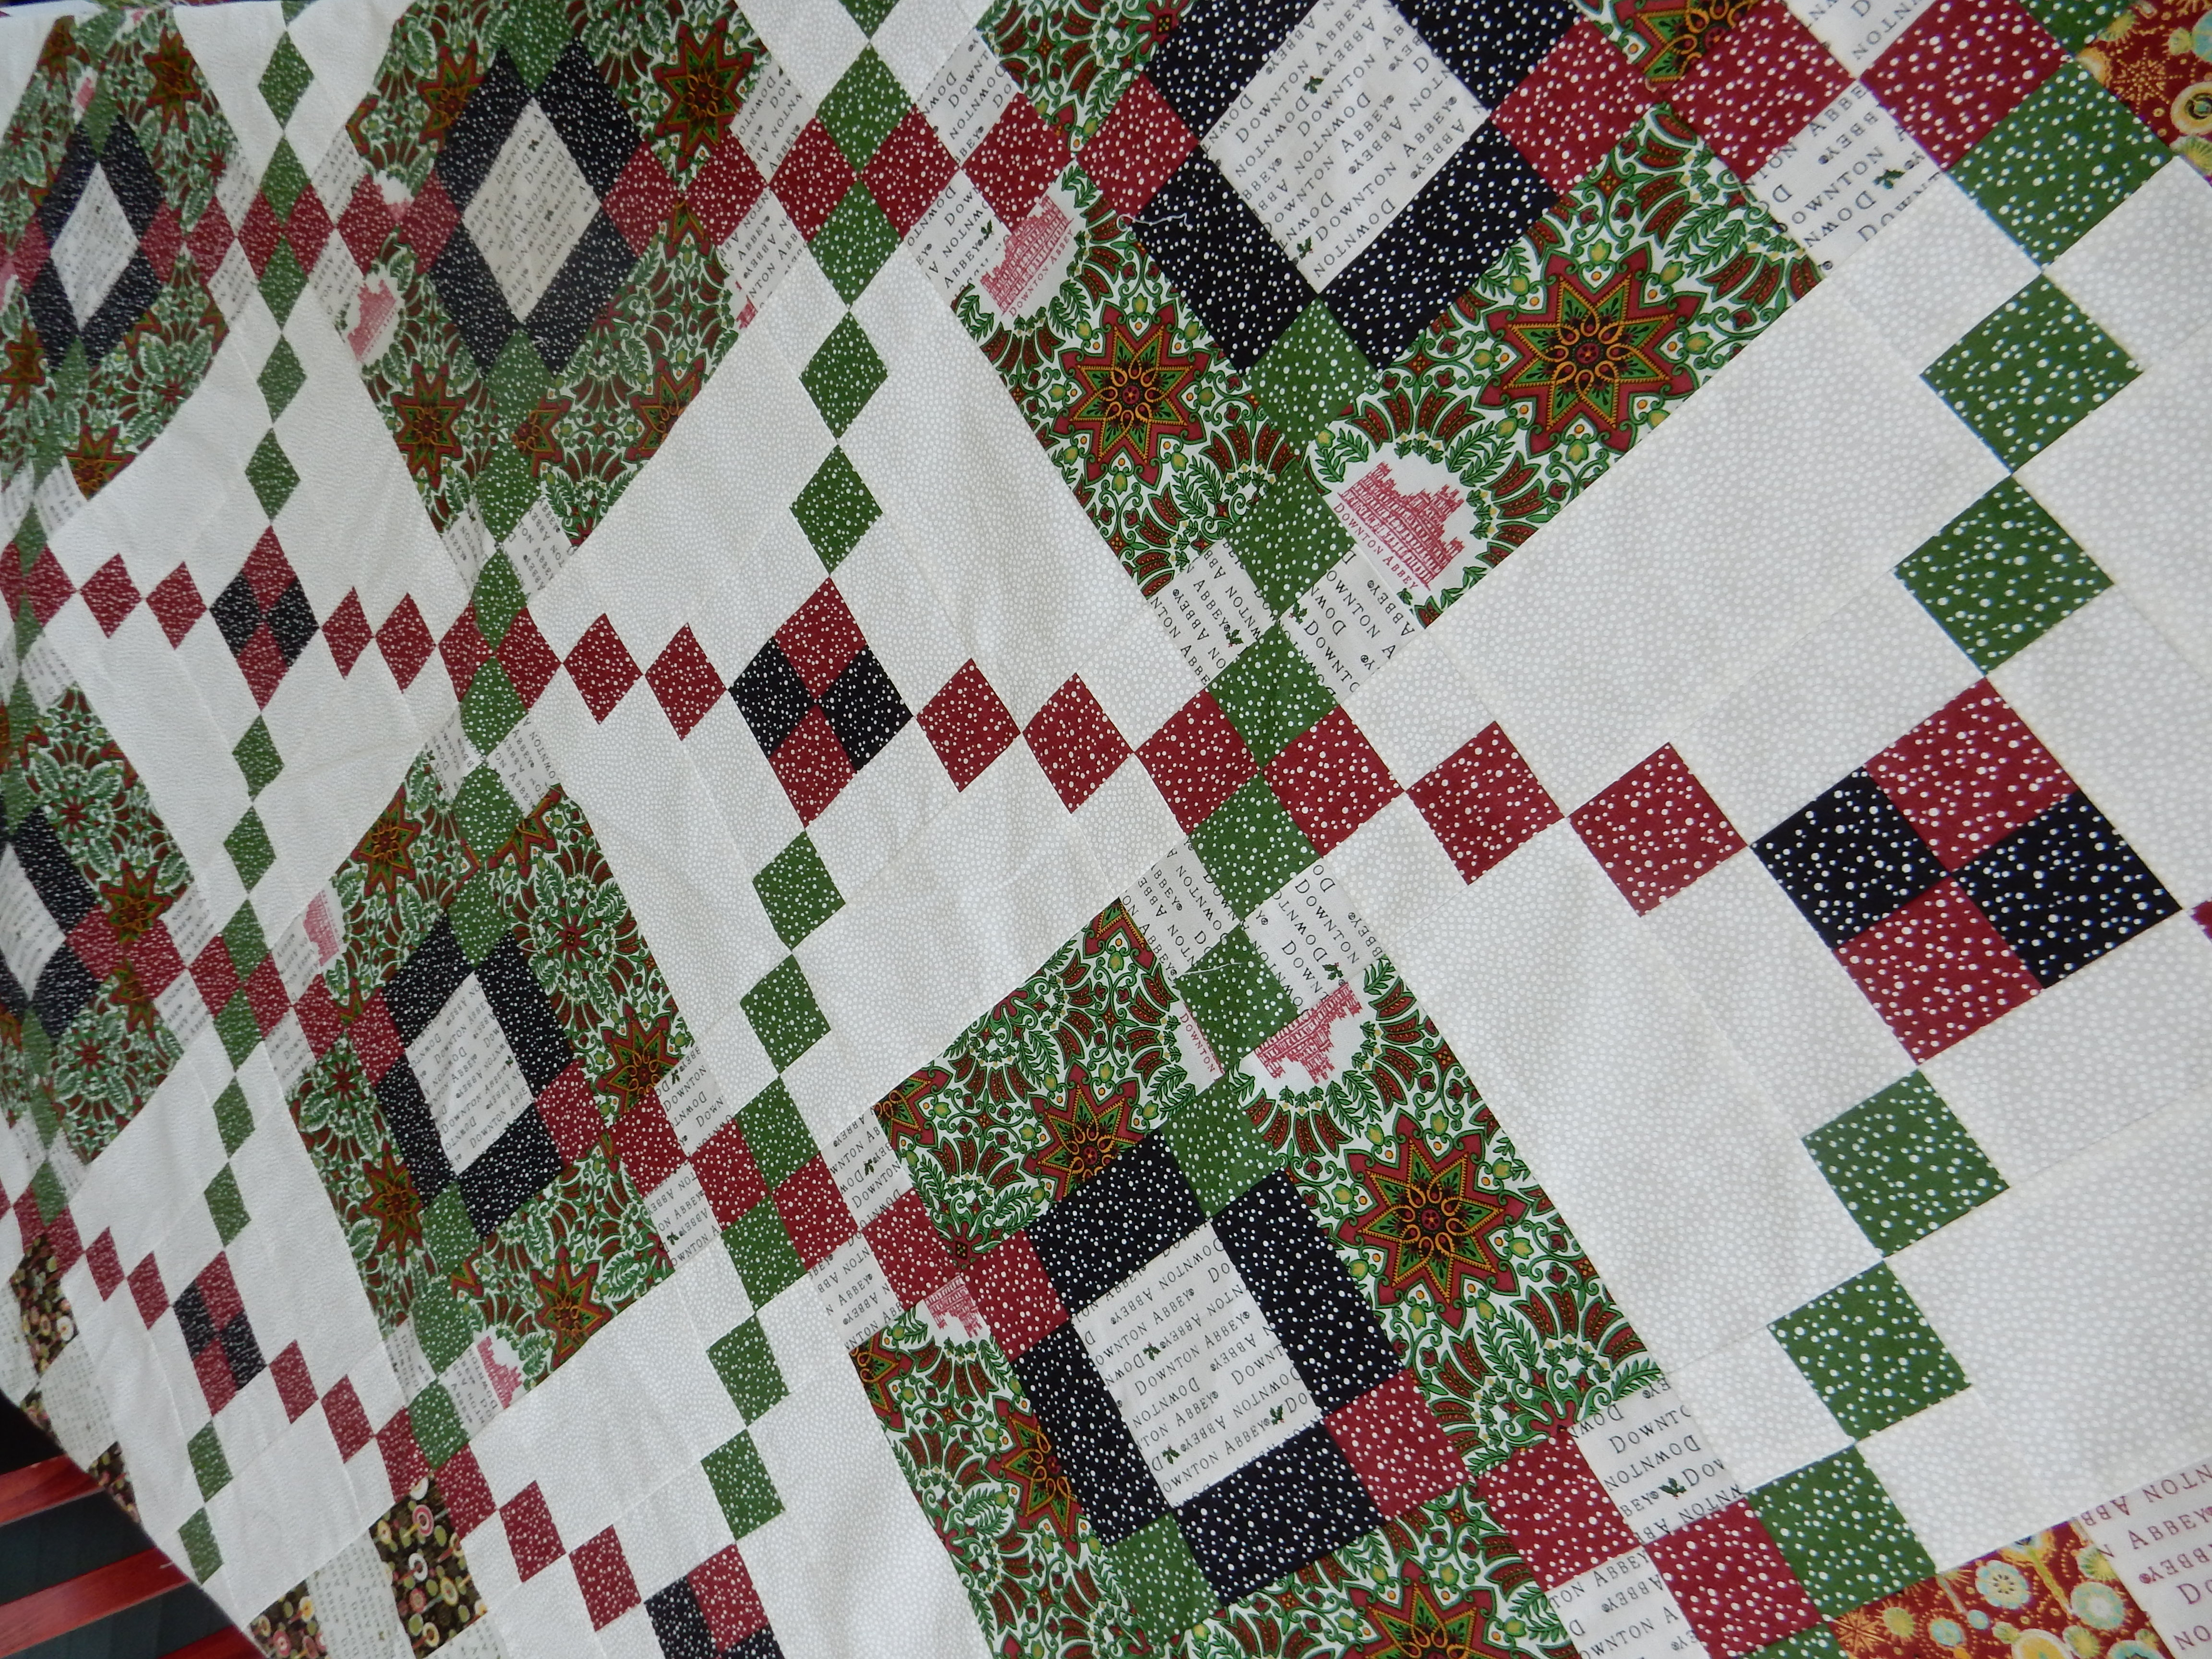 Downton Abbey Christmas Quilt Handmade By Carole Carr